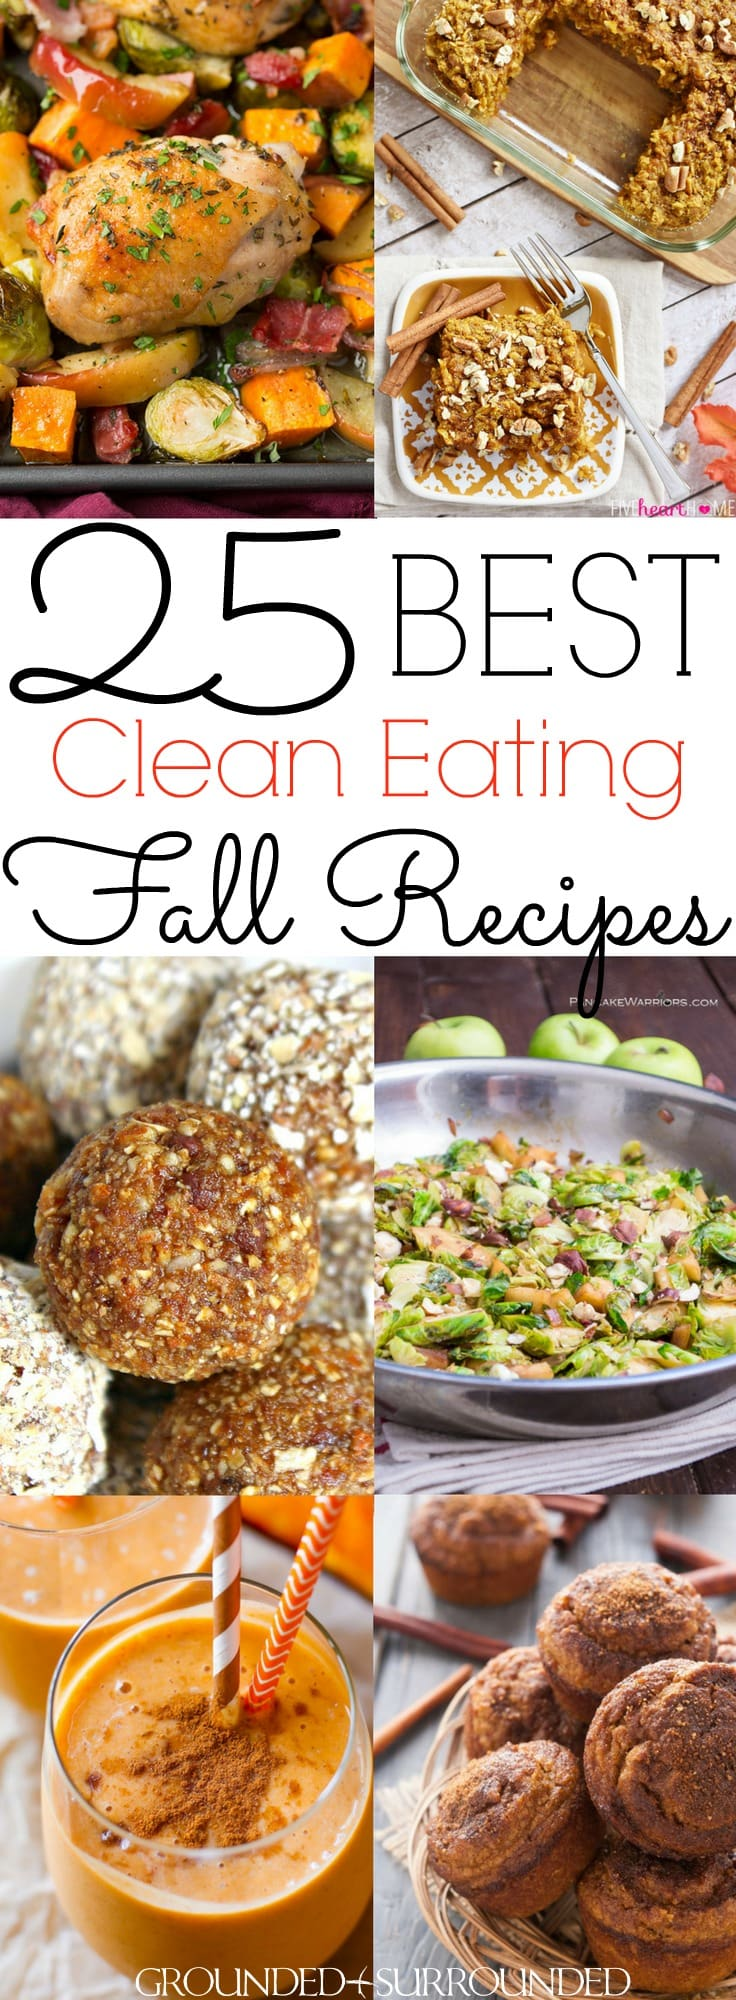 The 25 BEST Clean Eating Fall Recipes | Autumn is my favorite season to cook healthy and easy meals. You will find delicious breakfast, dinner, lunch, dessert and snack ideas. Not to mention soup, stew and drinks that use pumpkin, apple, brussels sprouts and squash recipes to satisify your need for classic, comforting and cozy flavors! Most are #glutenfree / #Paleo / #lowcarb / dairy free, but vegetarian and vegan substitutions can be made too. #cleaneating #fall